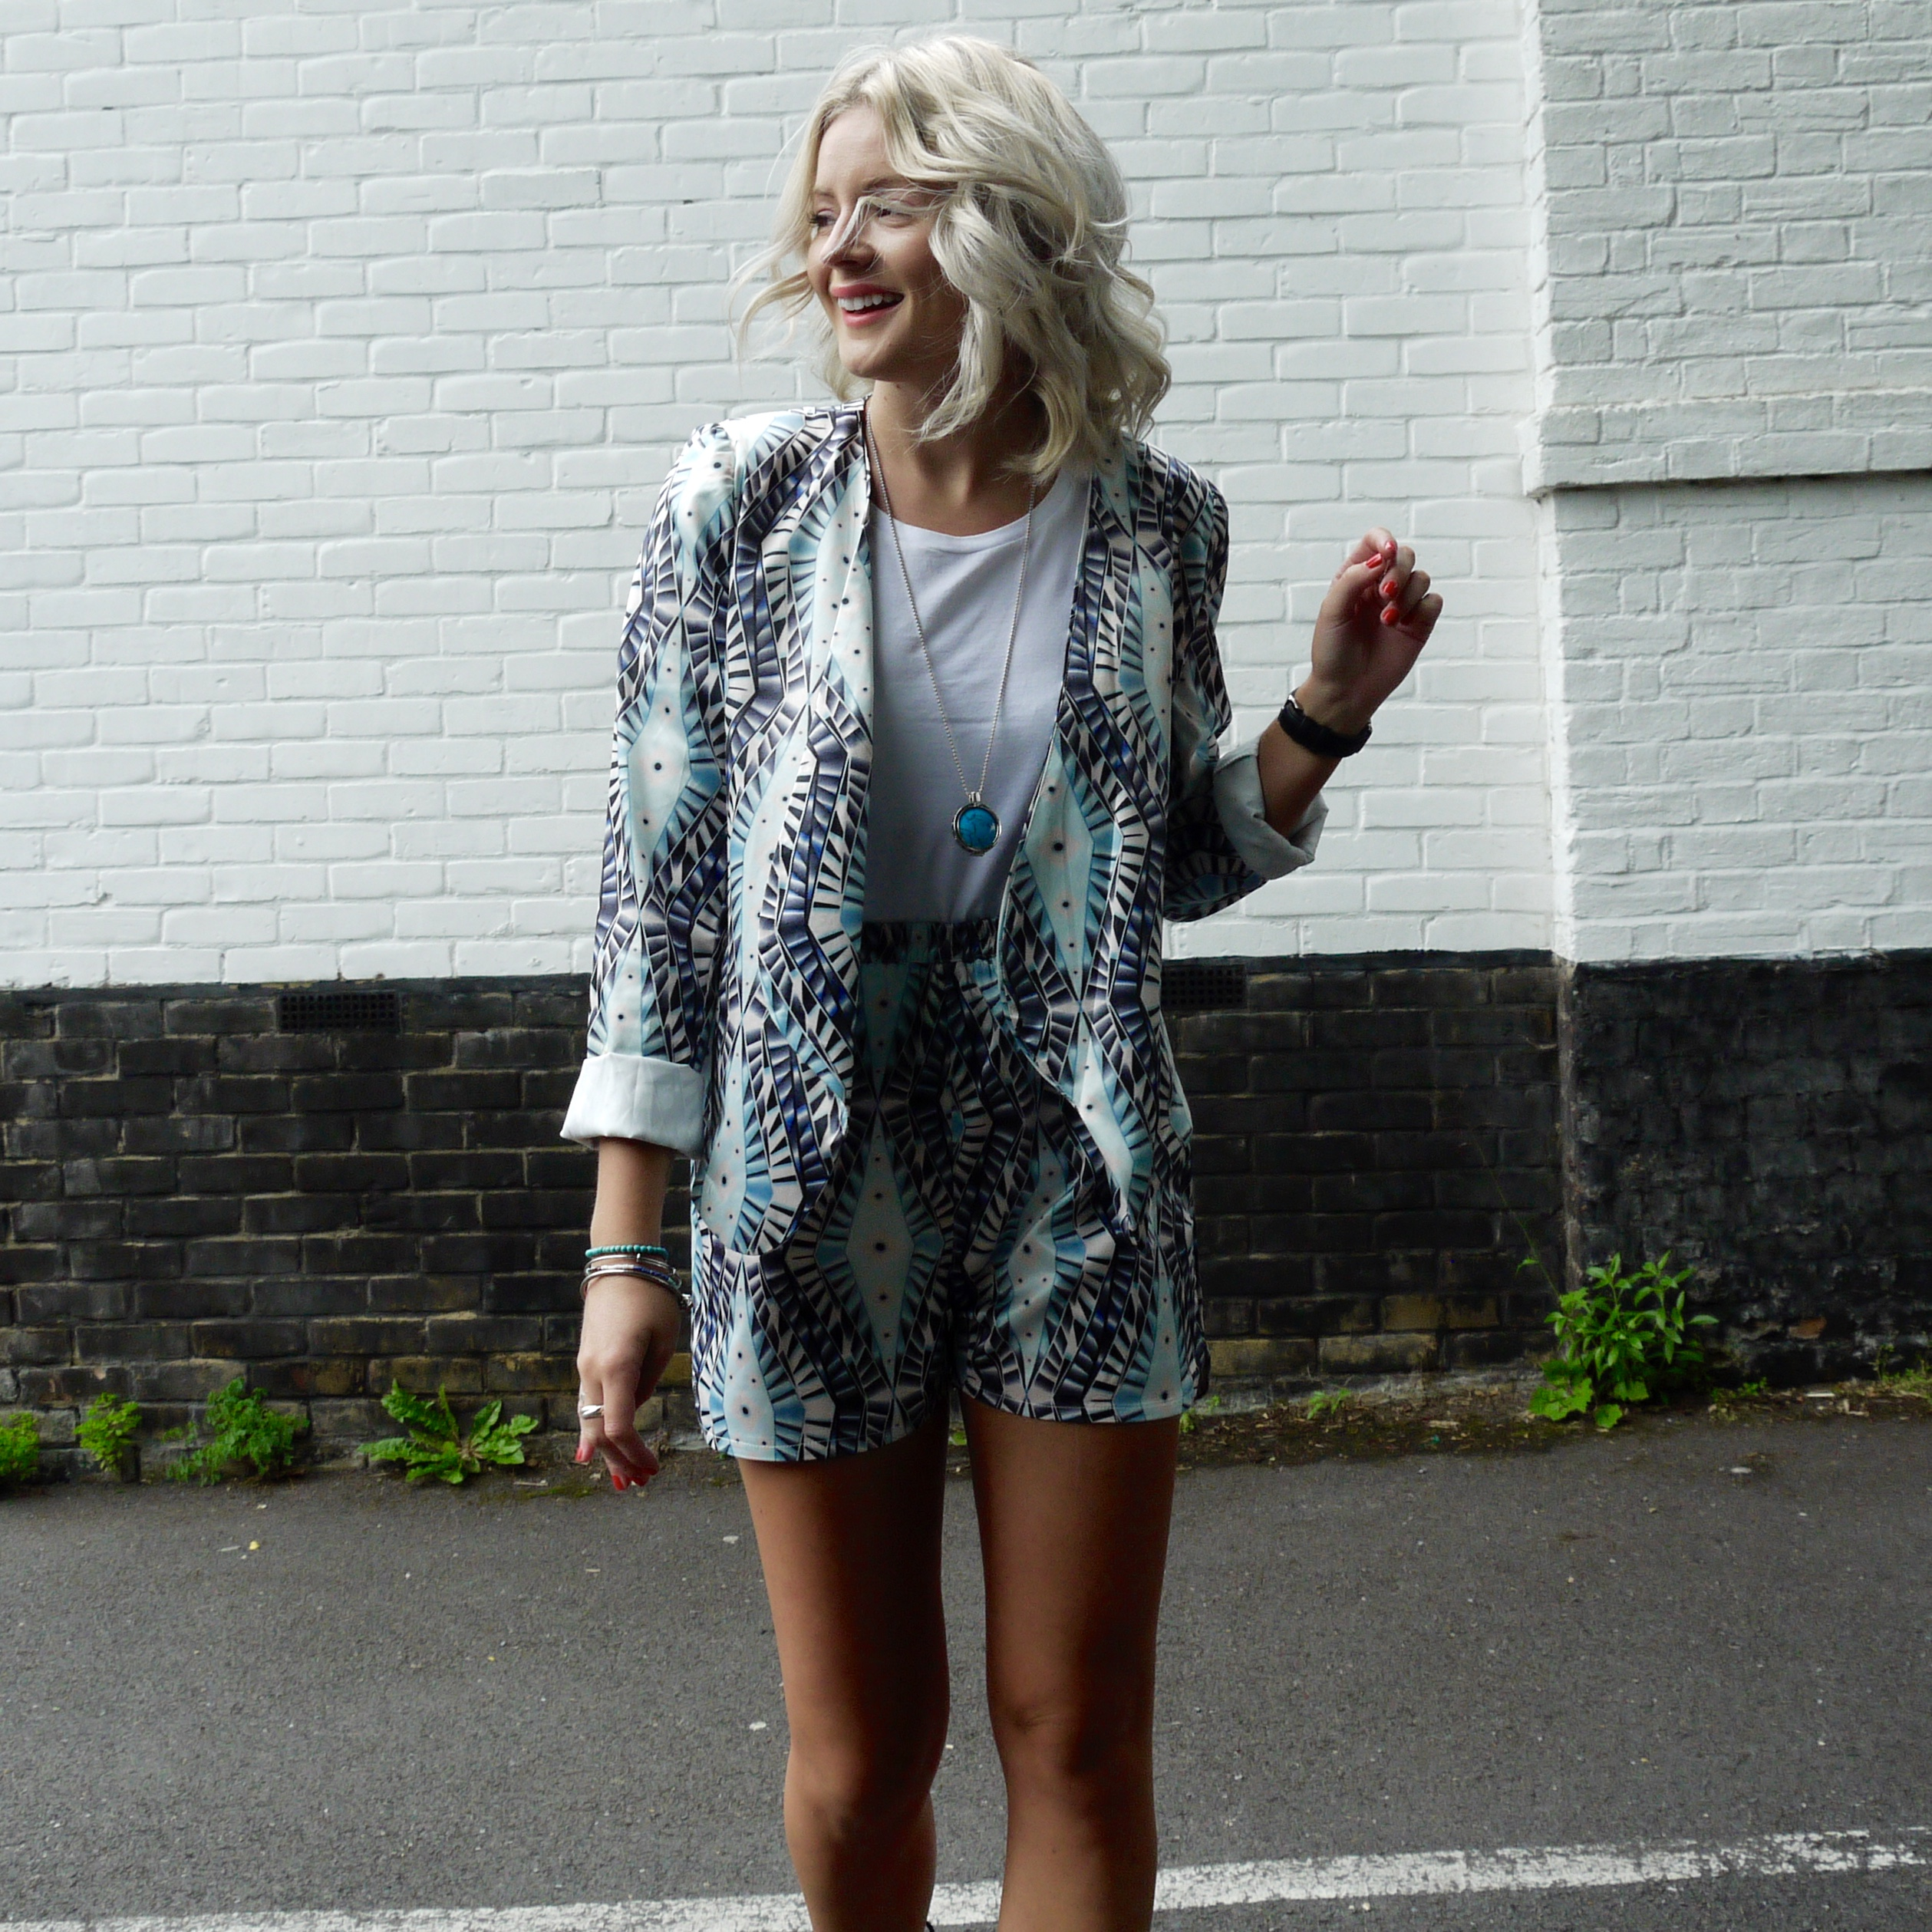 laura byrnes, lauras little locket, fashion blogger, co-ord, how to wear a co-ord, two piece, black tie up heels, 4th and reckless shoes, angel eye fashion, outfit of the day